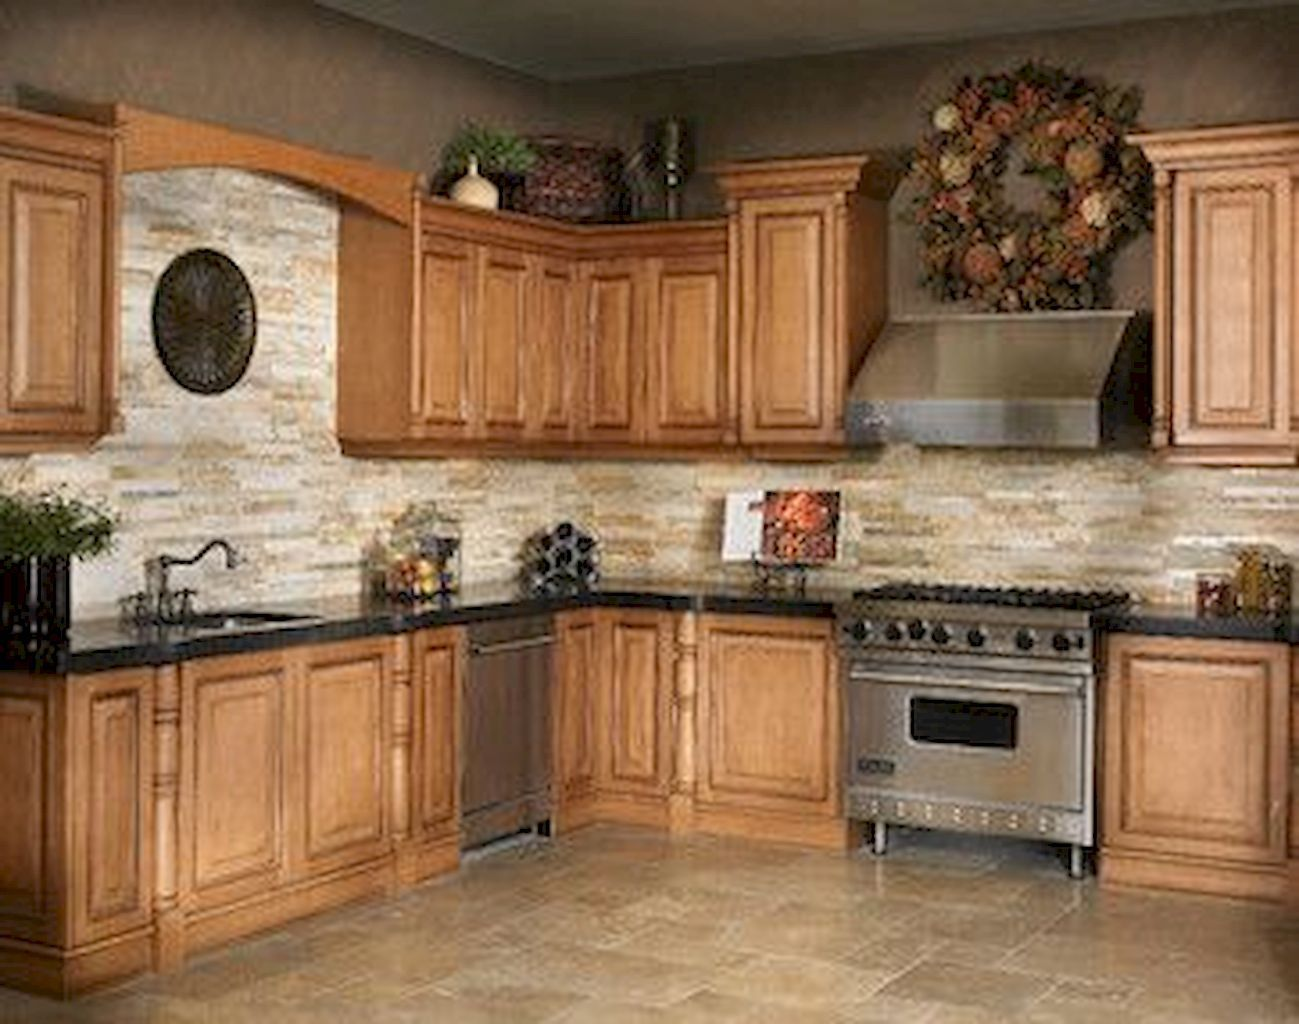 oak cabinet kitchen companies 100 best cabinets ideas decoration for farmhouse style adorable https roomadness